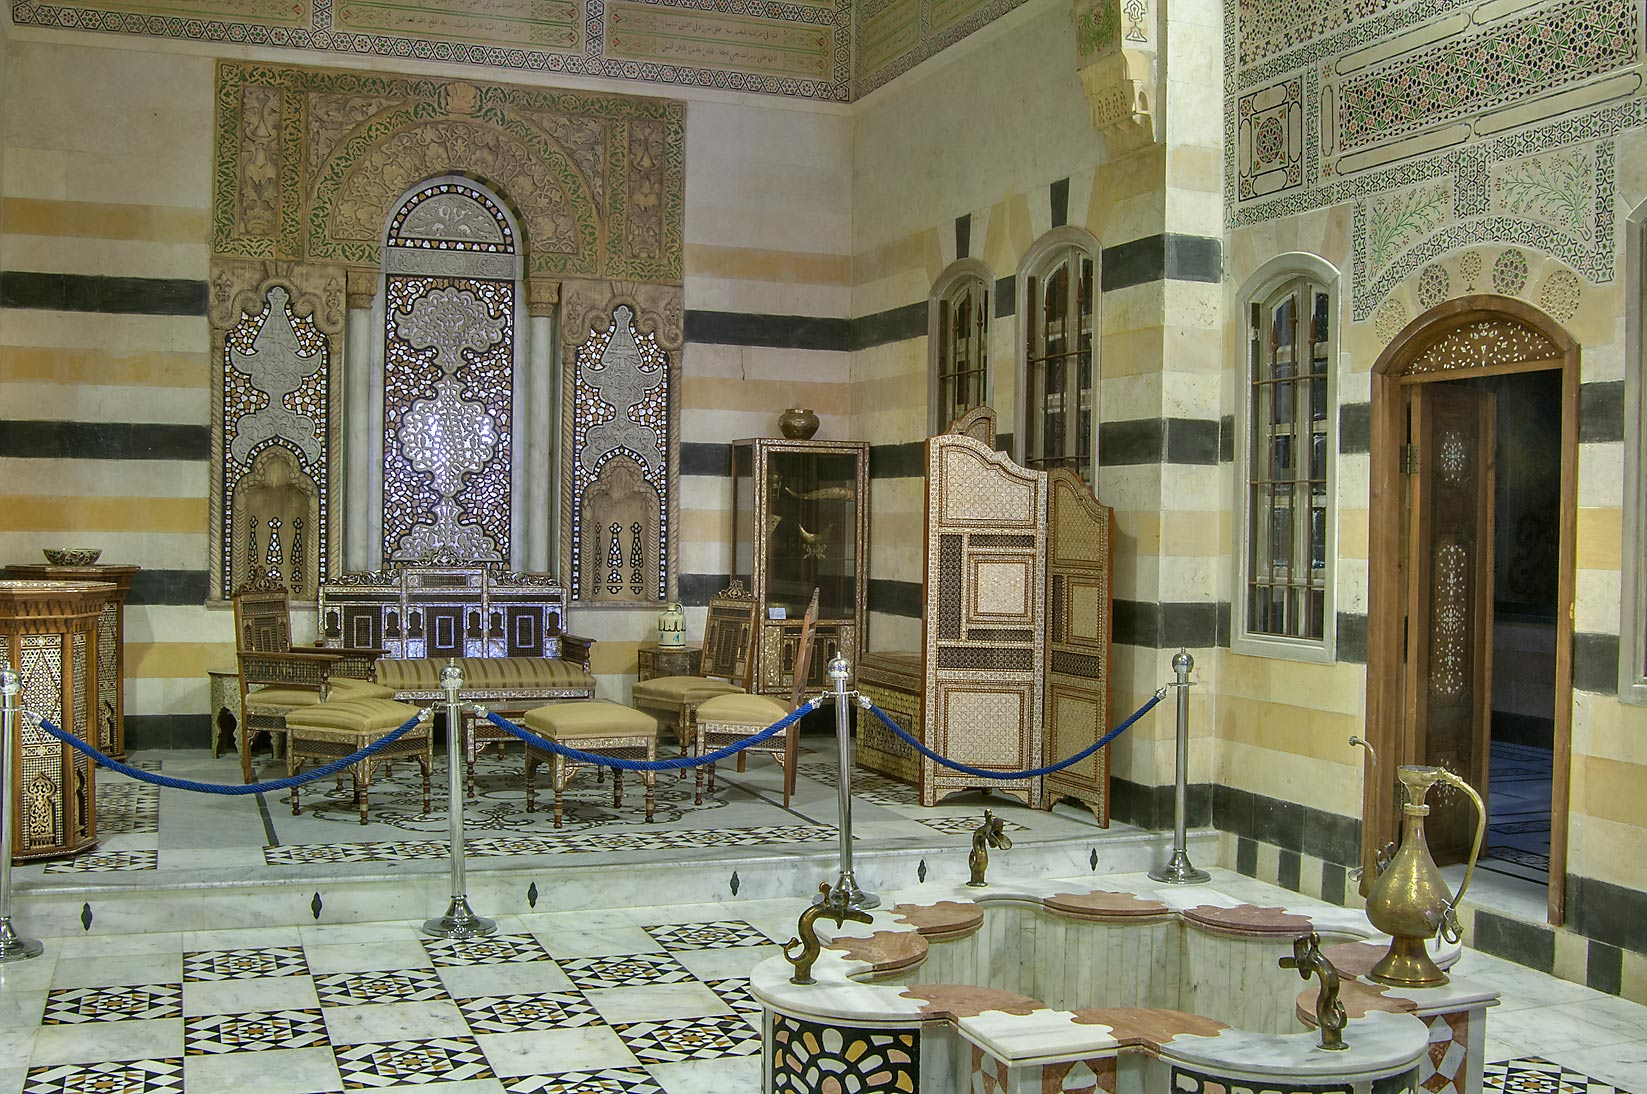 Traditional bathroom in Sheikh Faisal Bin Qassim...Museum near Al-Shahaniya. Doha, Qatar